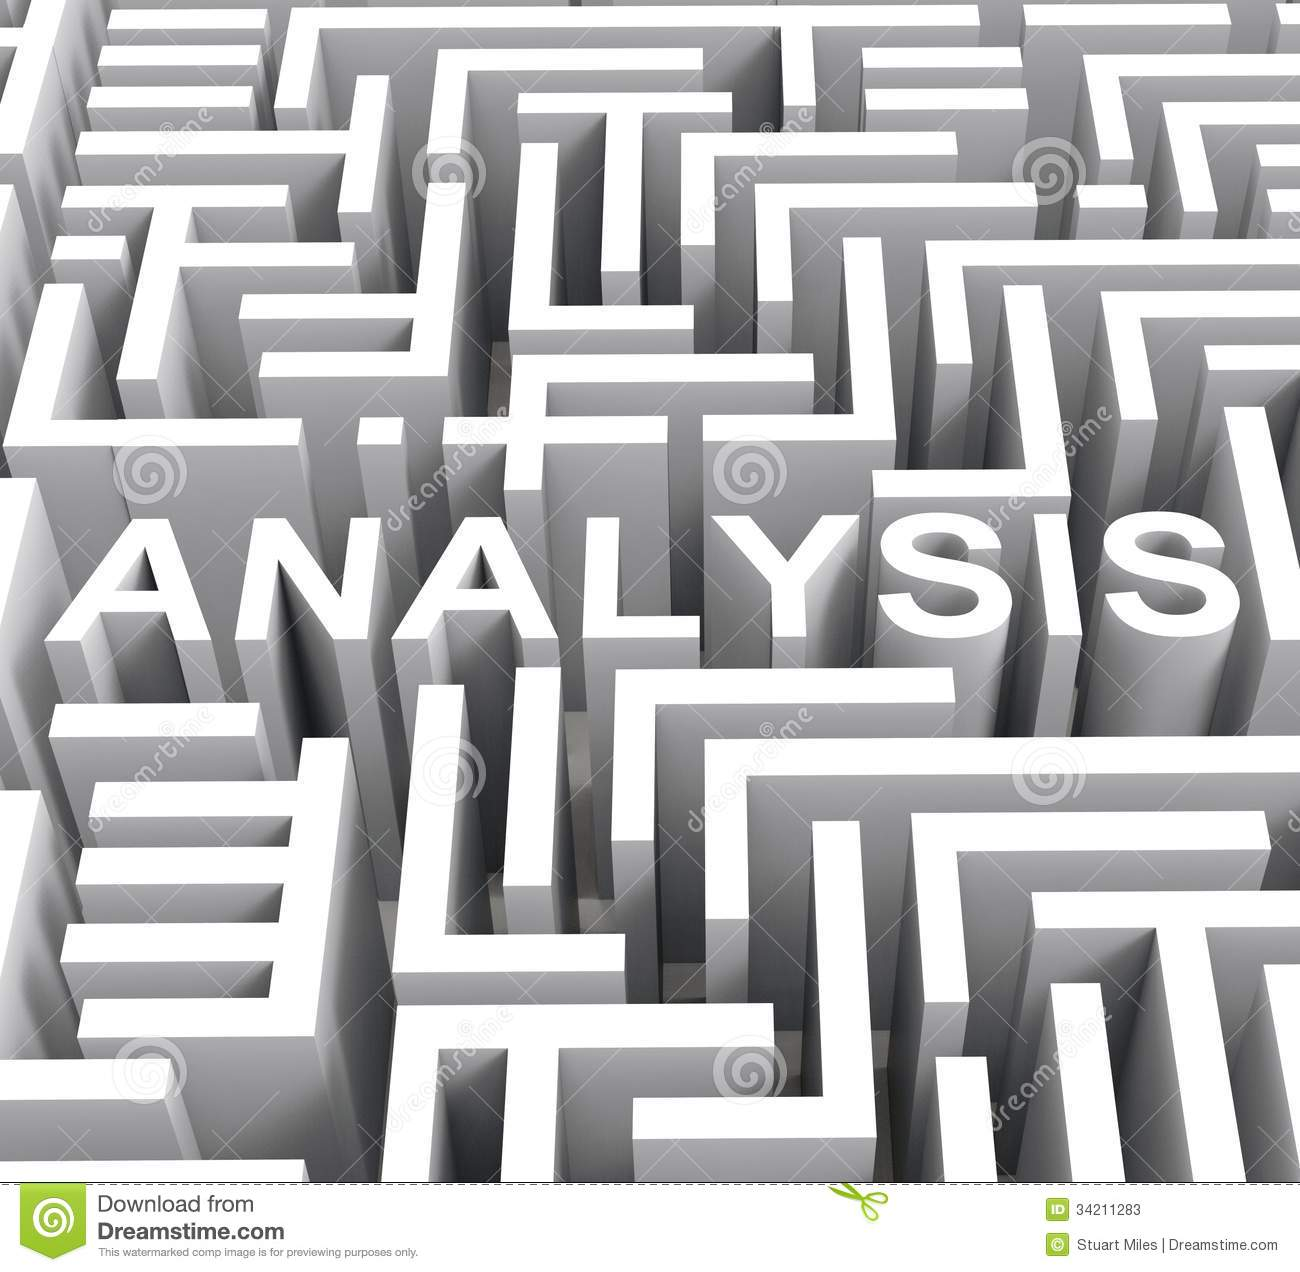 analysis-word-shows-investigation-research-analyzing-34211283.jpg